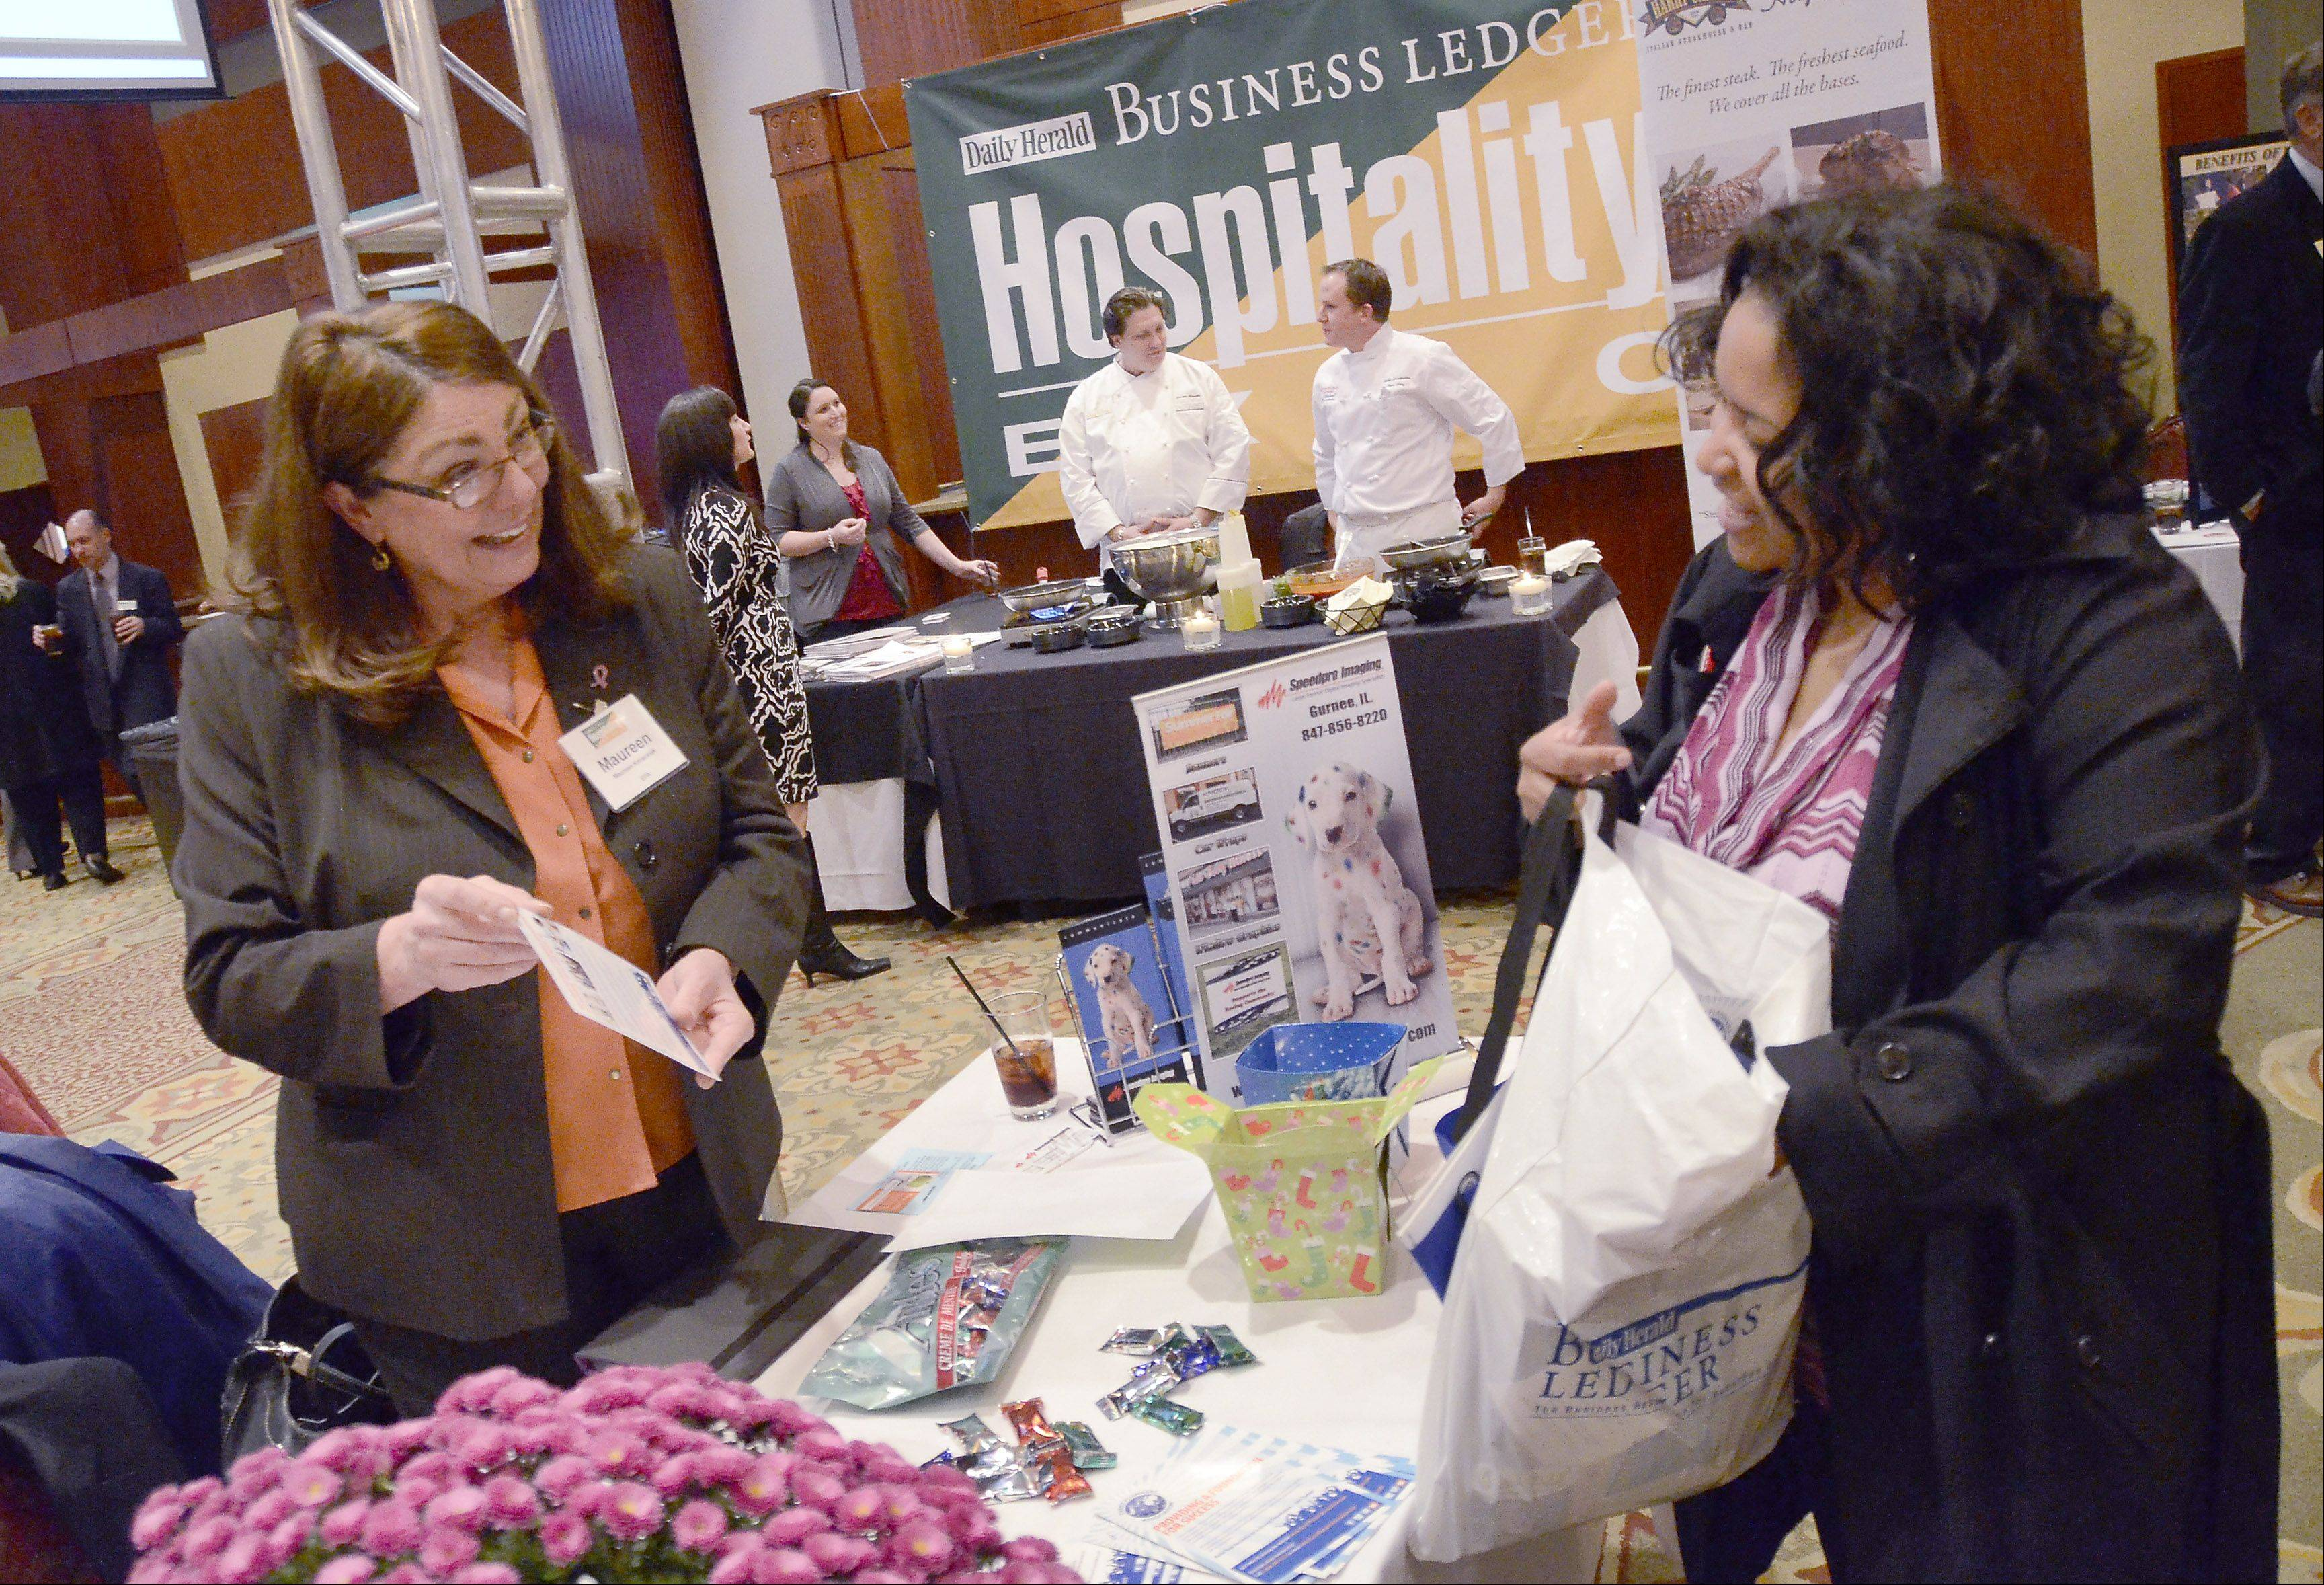 Bill Zars/bzars@dailyherald.com Maureen Kmieciak, left, with Speedpro Imaging of Gurnee and event coordinator Rashaan Tobin with Events of Radiance chat at the Daily Herald Business Ledger Northwest Hospitality Expo at the Meadows Club in Rolling Meadows.